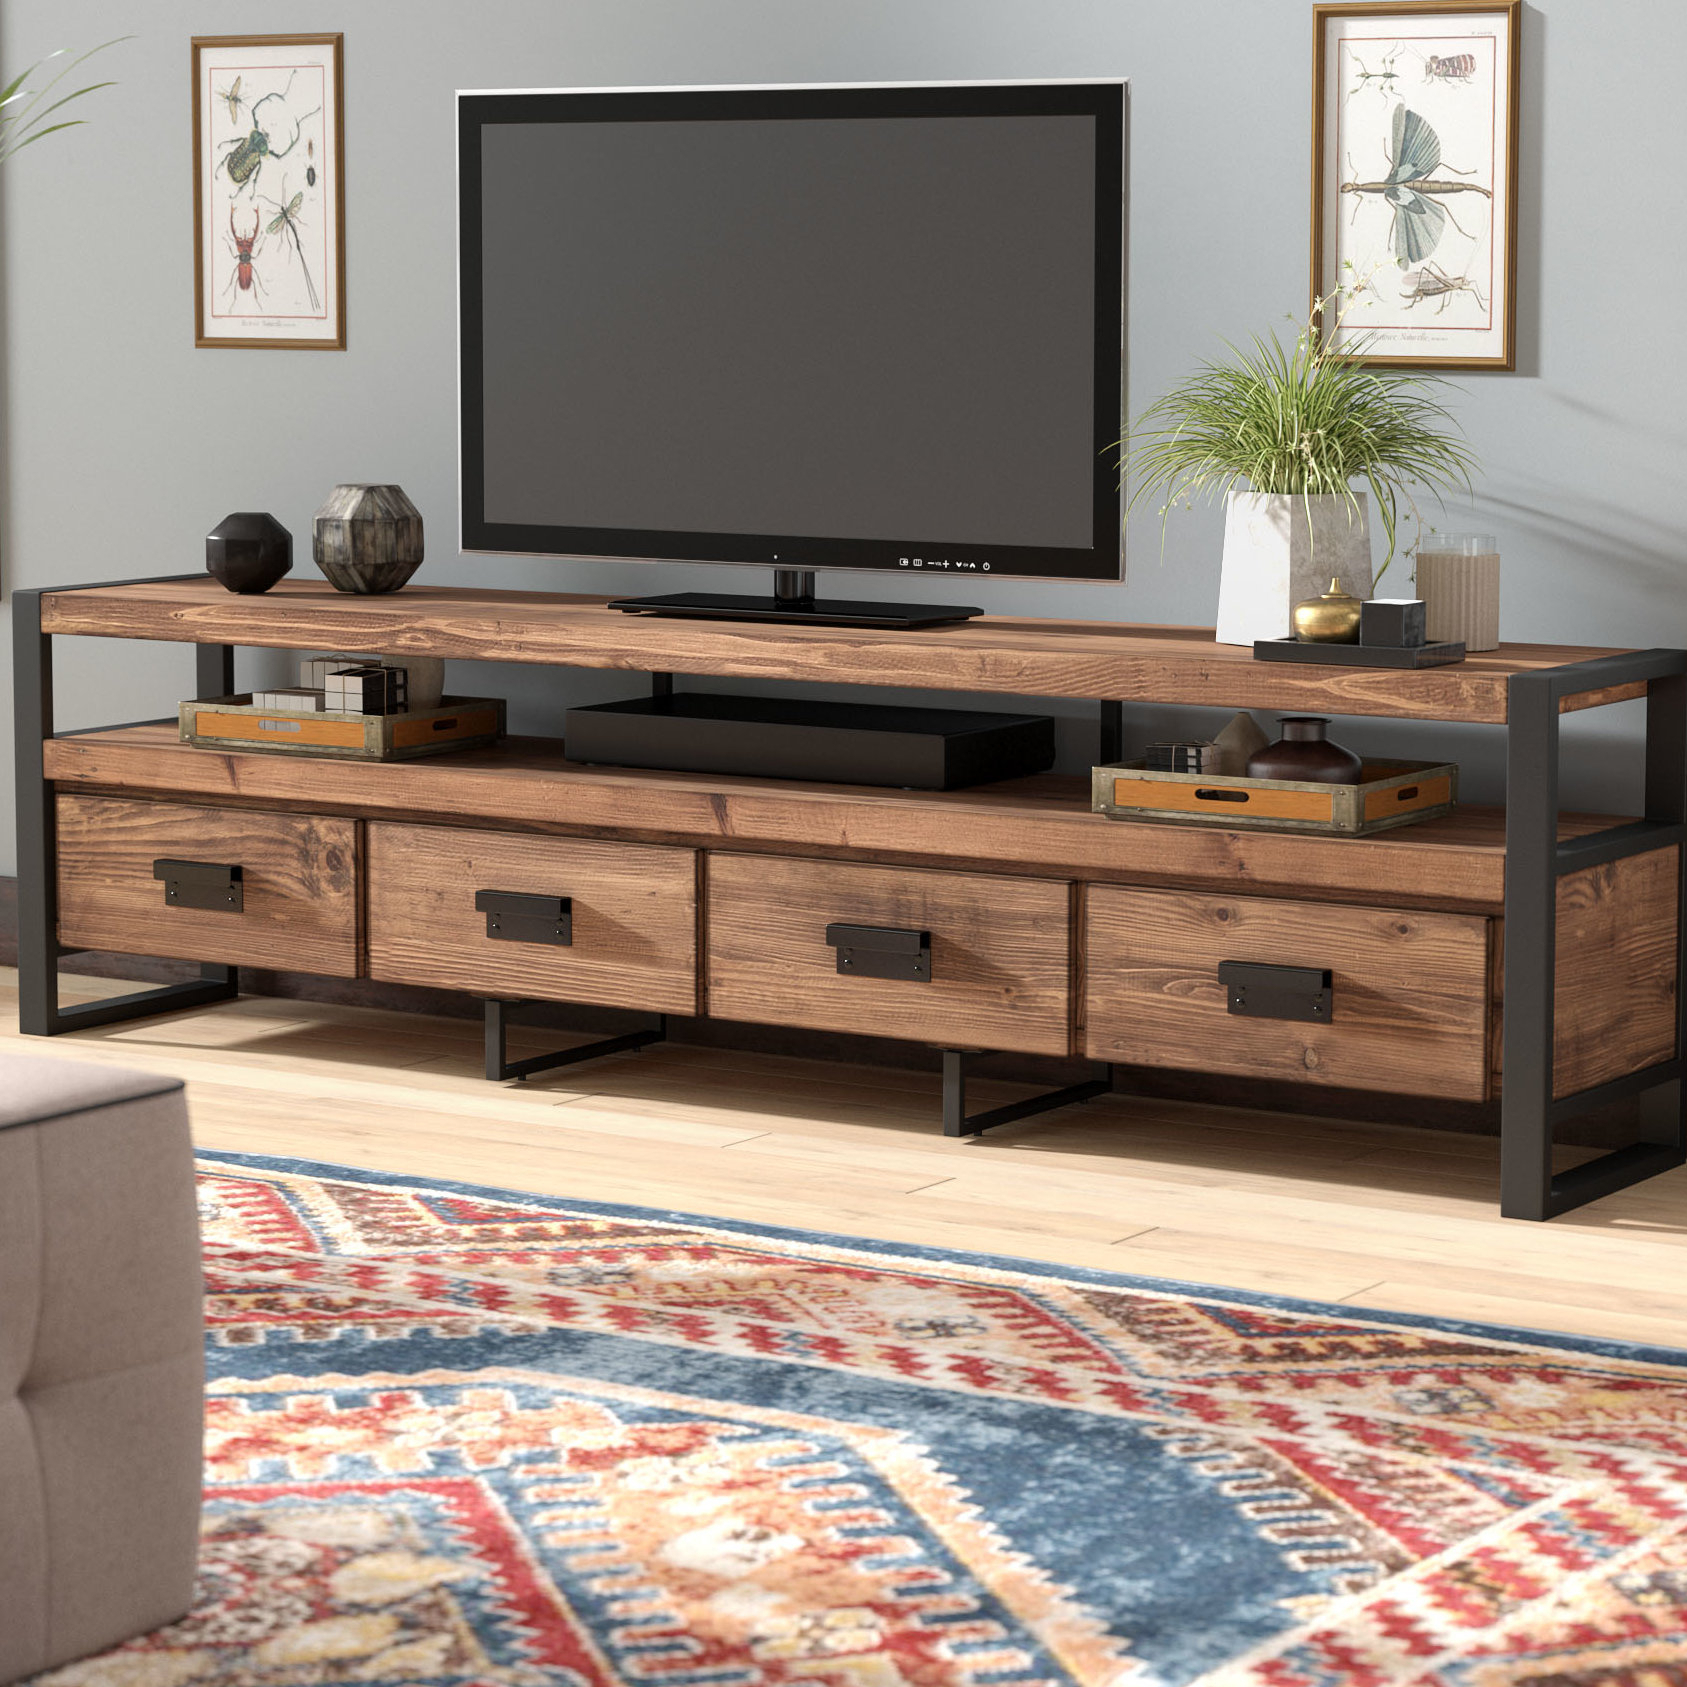 Industrial Tv Stands & Entertainment Centers You'll Love | Wayfair for Oxford 70 Inch Tv Stands (Image 14 of 30)